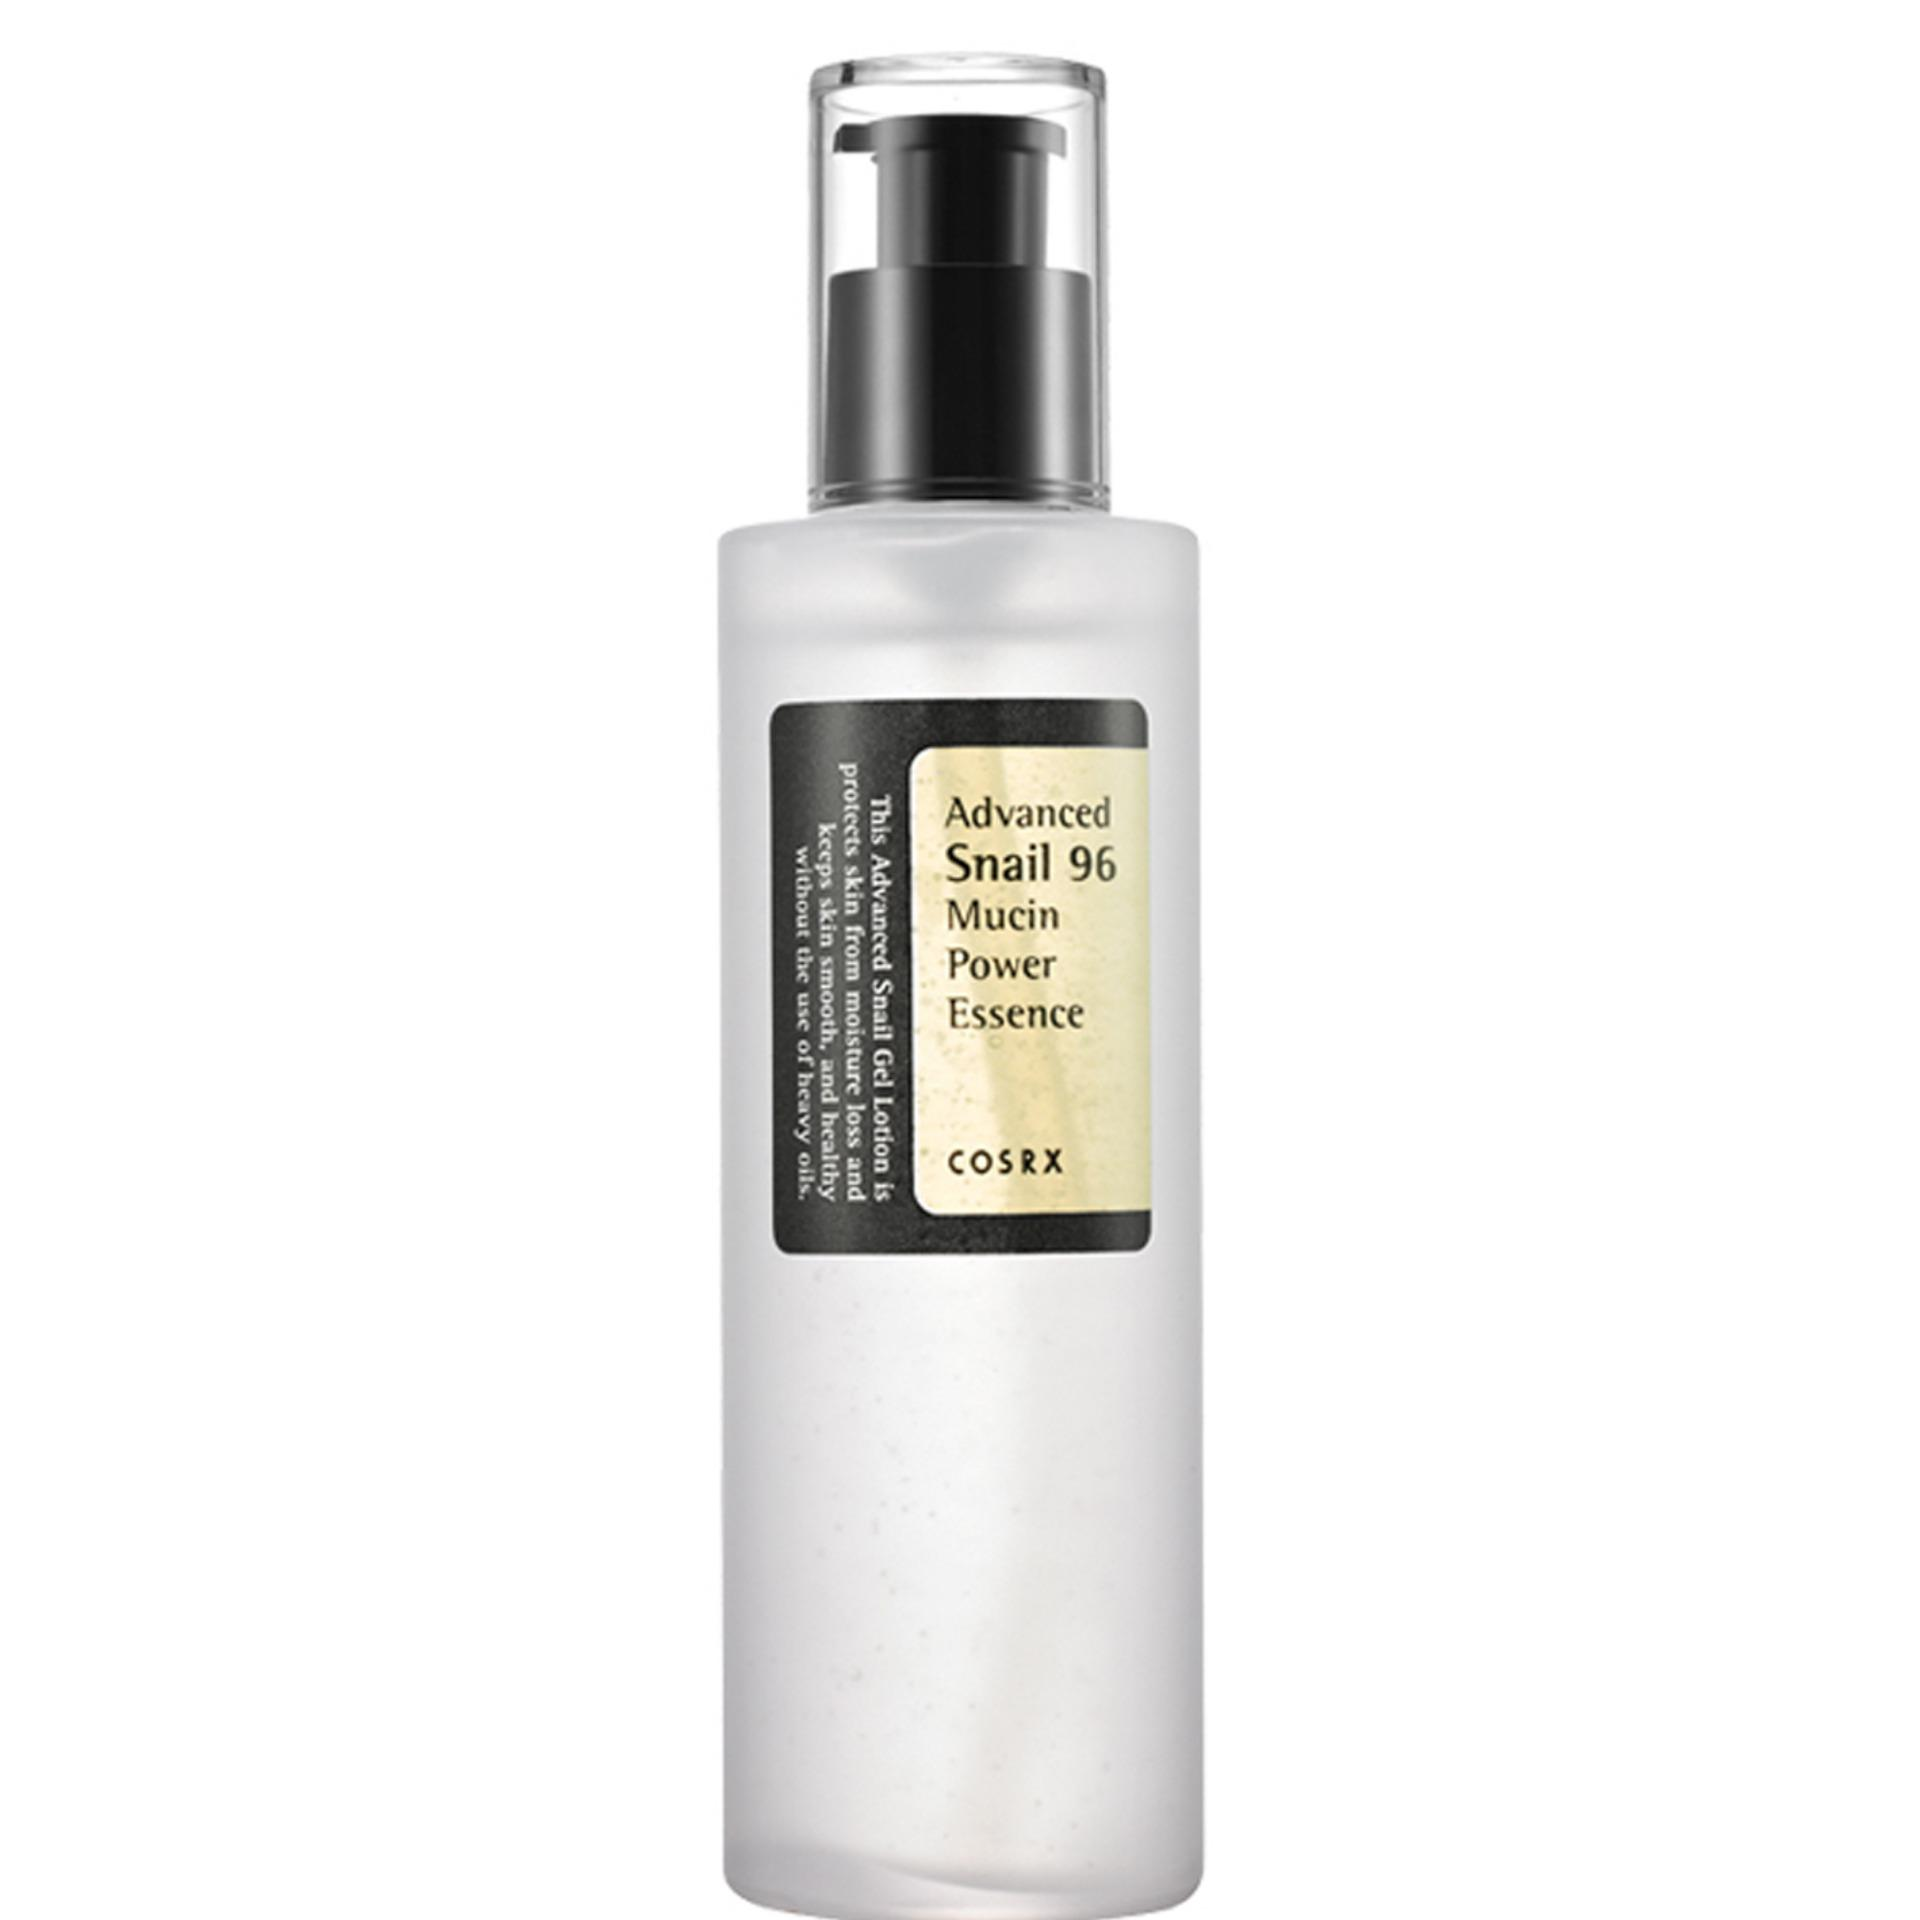 For Sale Cosrx Advanced Snail 96 Mucin Power Essence